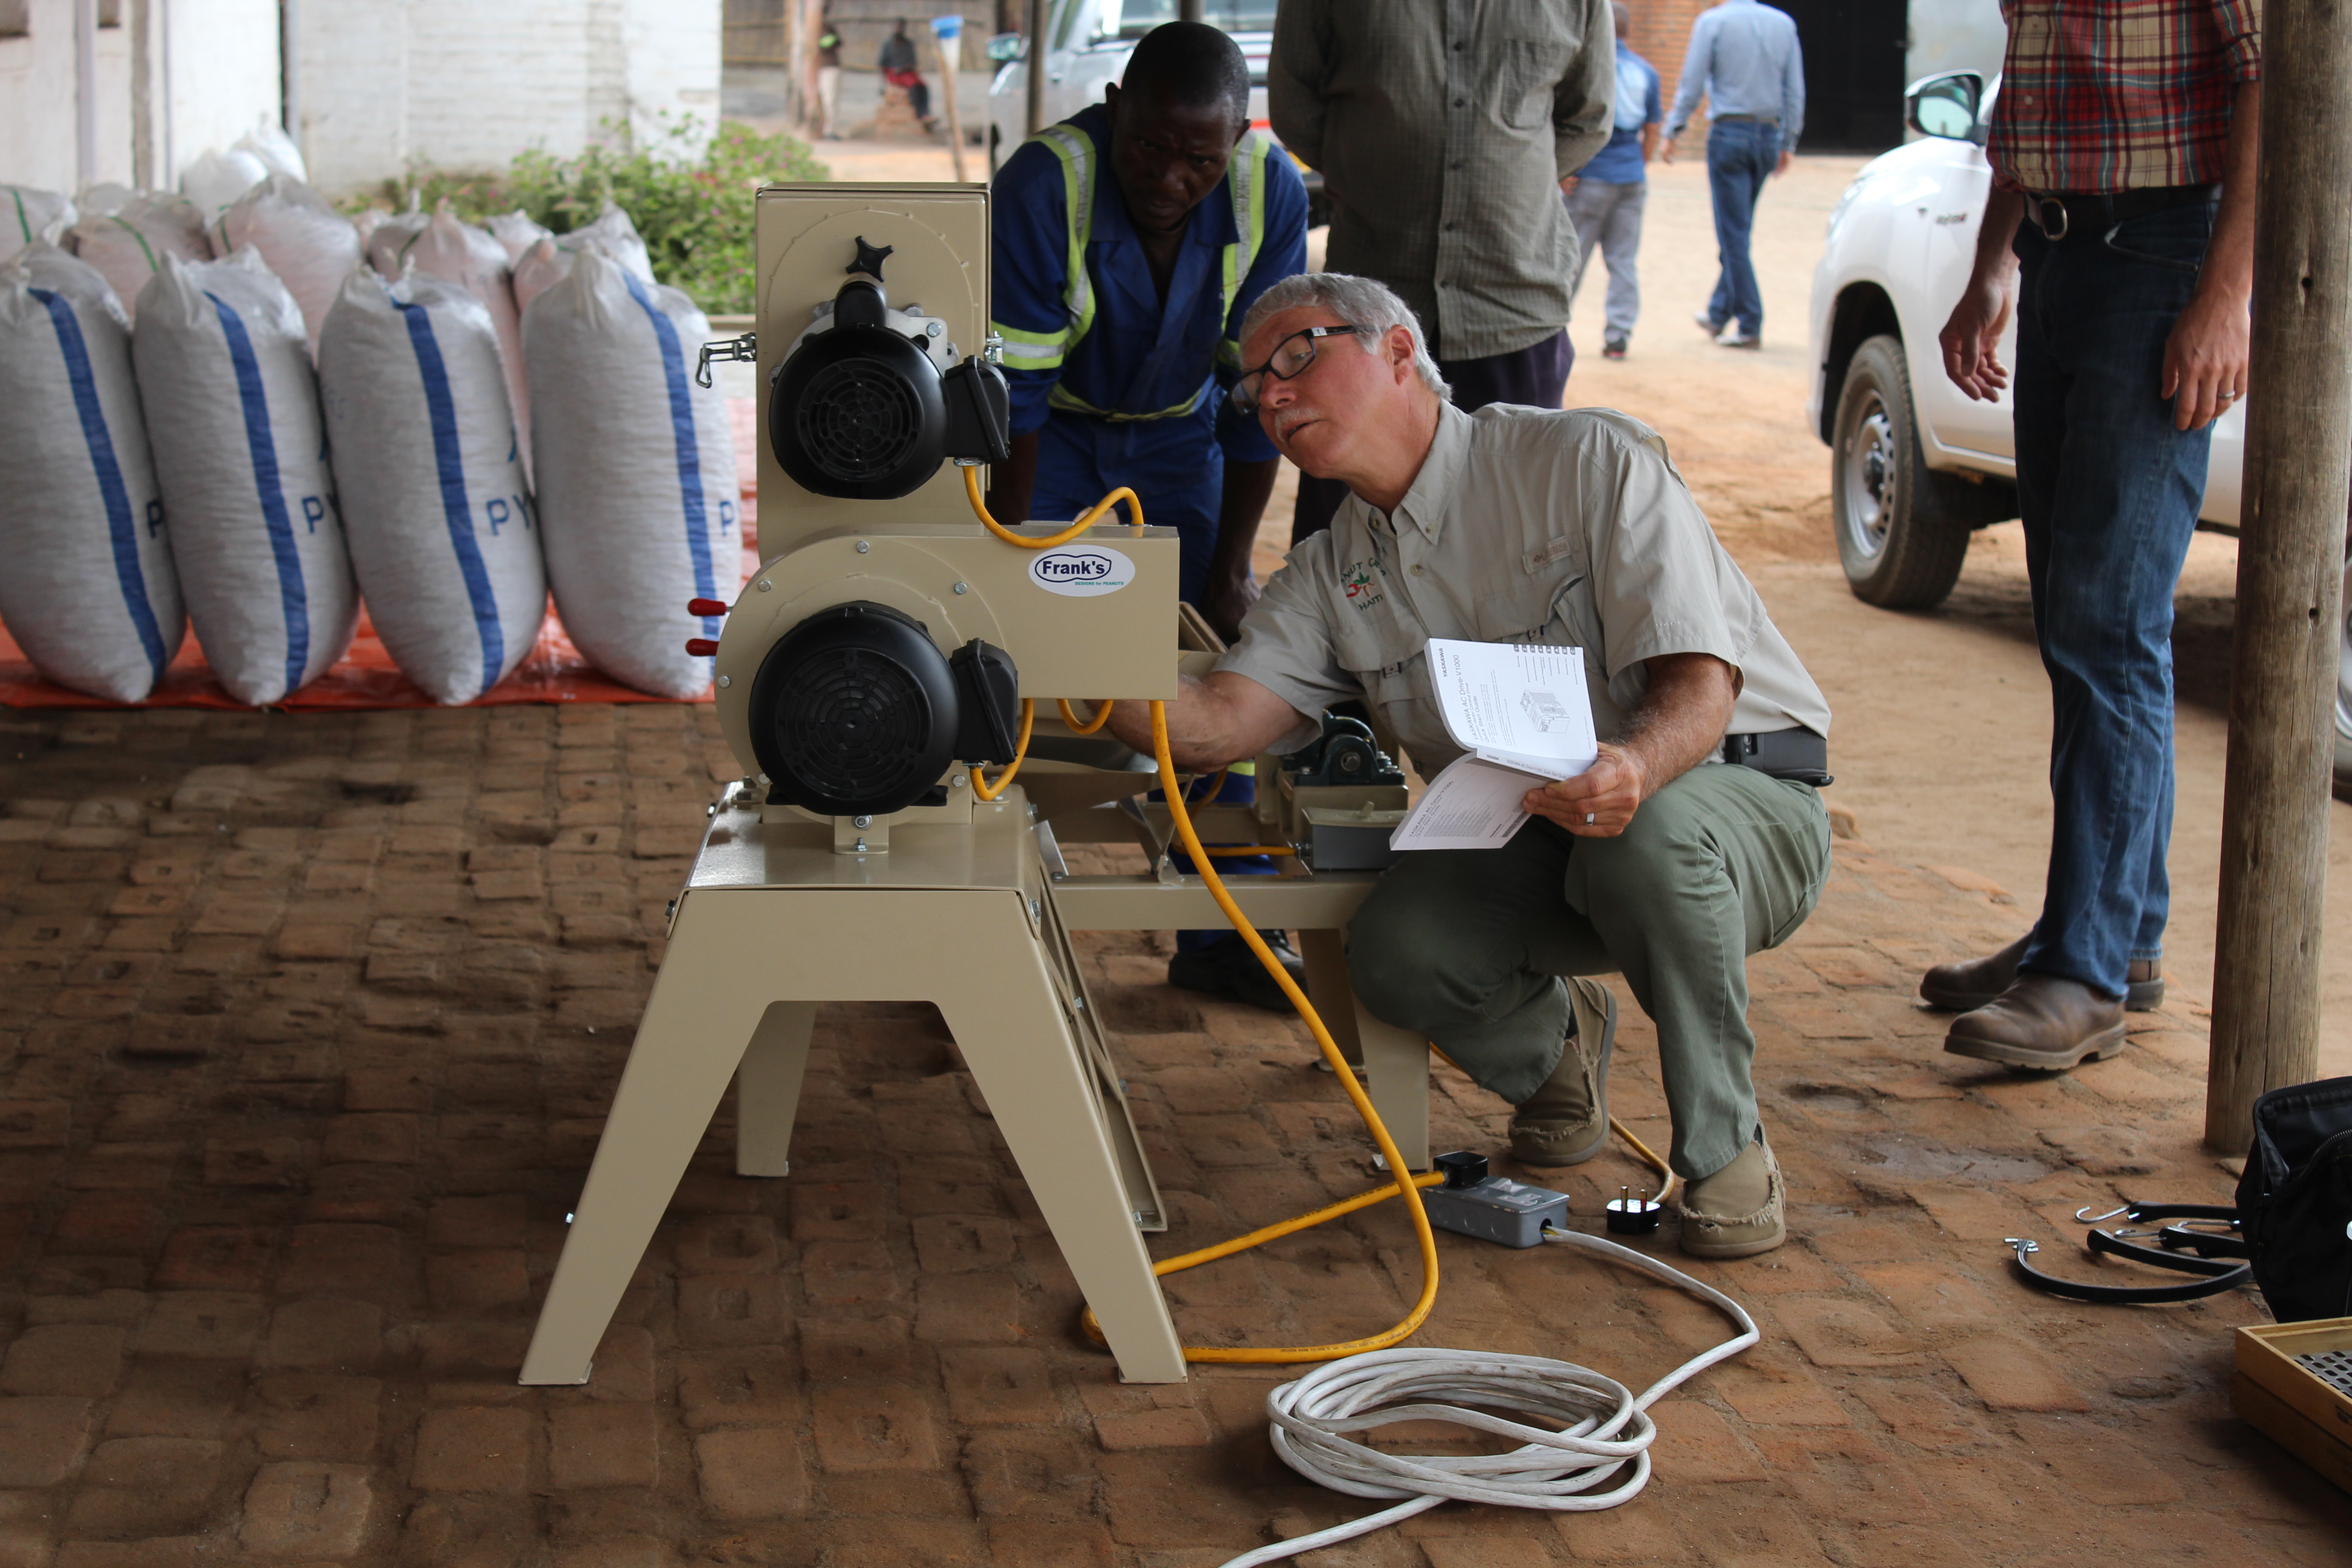 Frank Nolin, a retired businessman who manufactured agricultural equipment for Georgia farms, is designing and building small-scale equipment for Africa through the Feed the Future Peanut Innovation Lab at the University of Georgia.